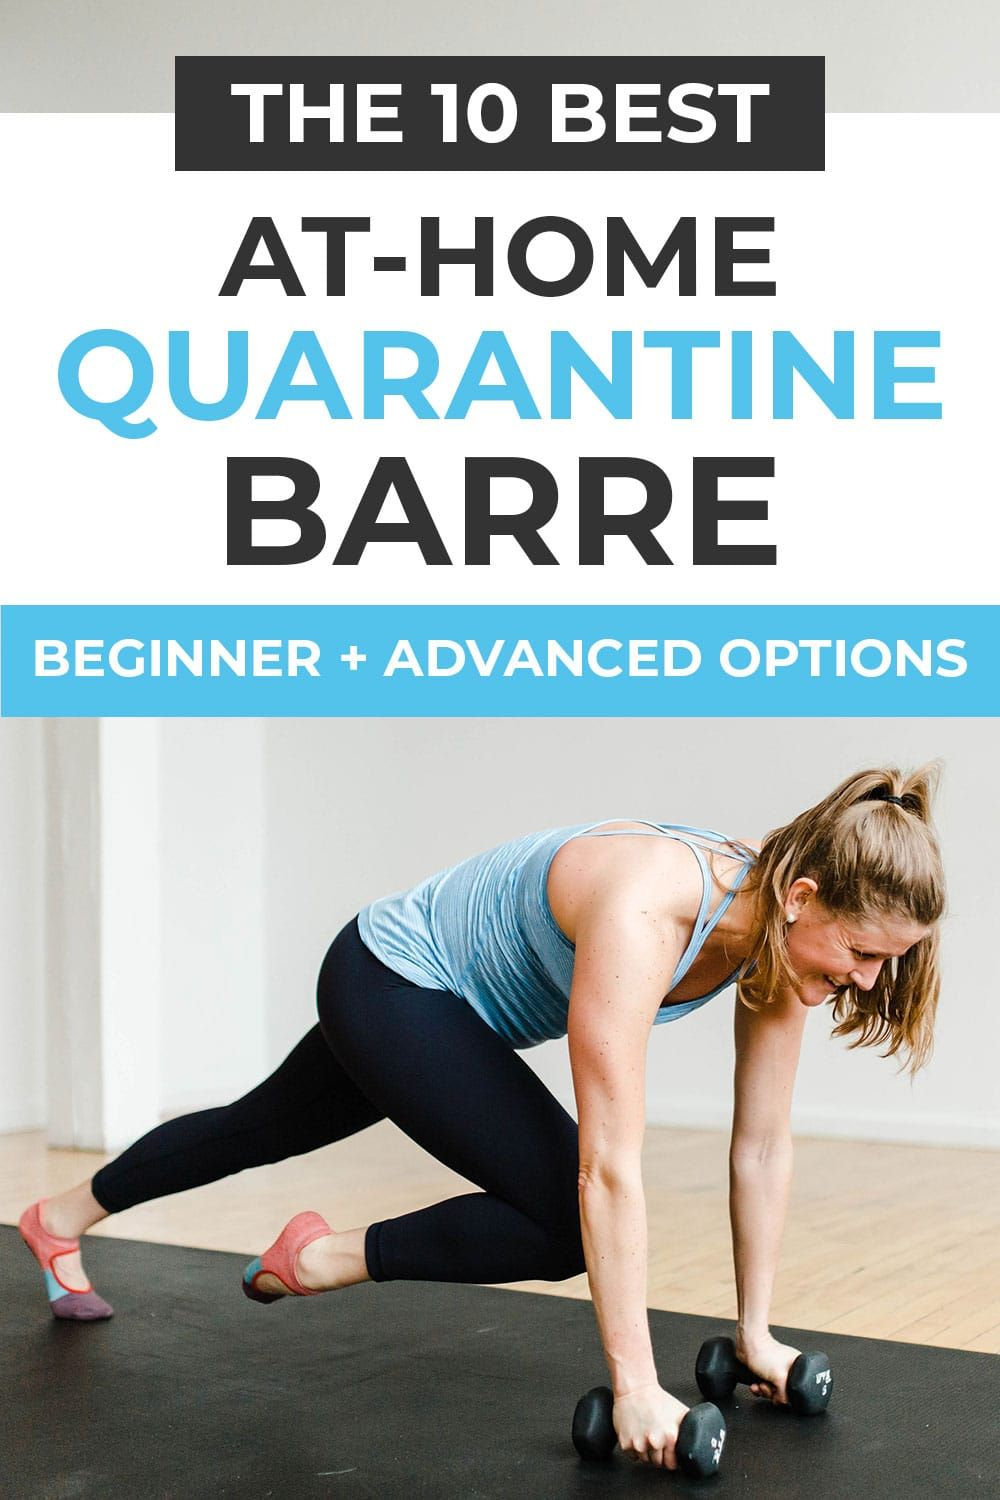 Barre Workouts For Quarantine